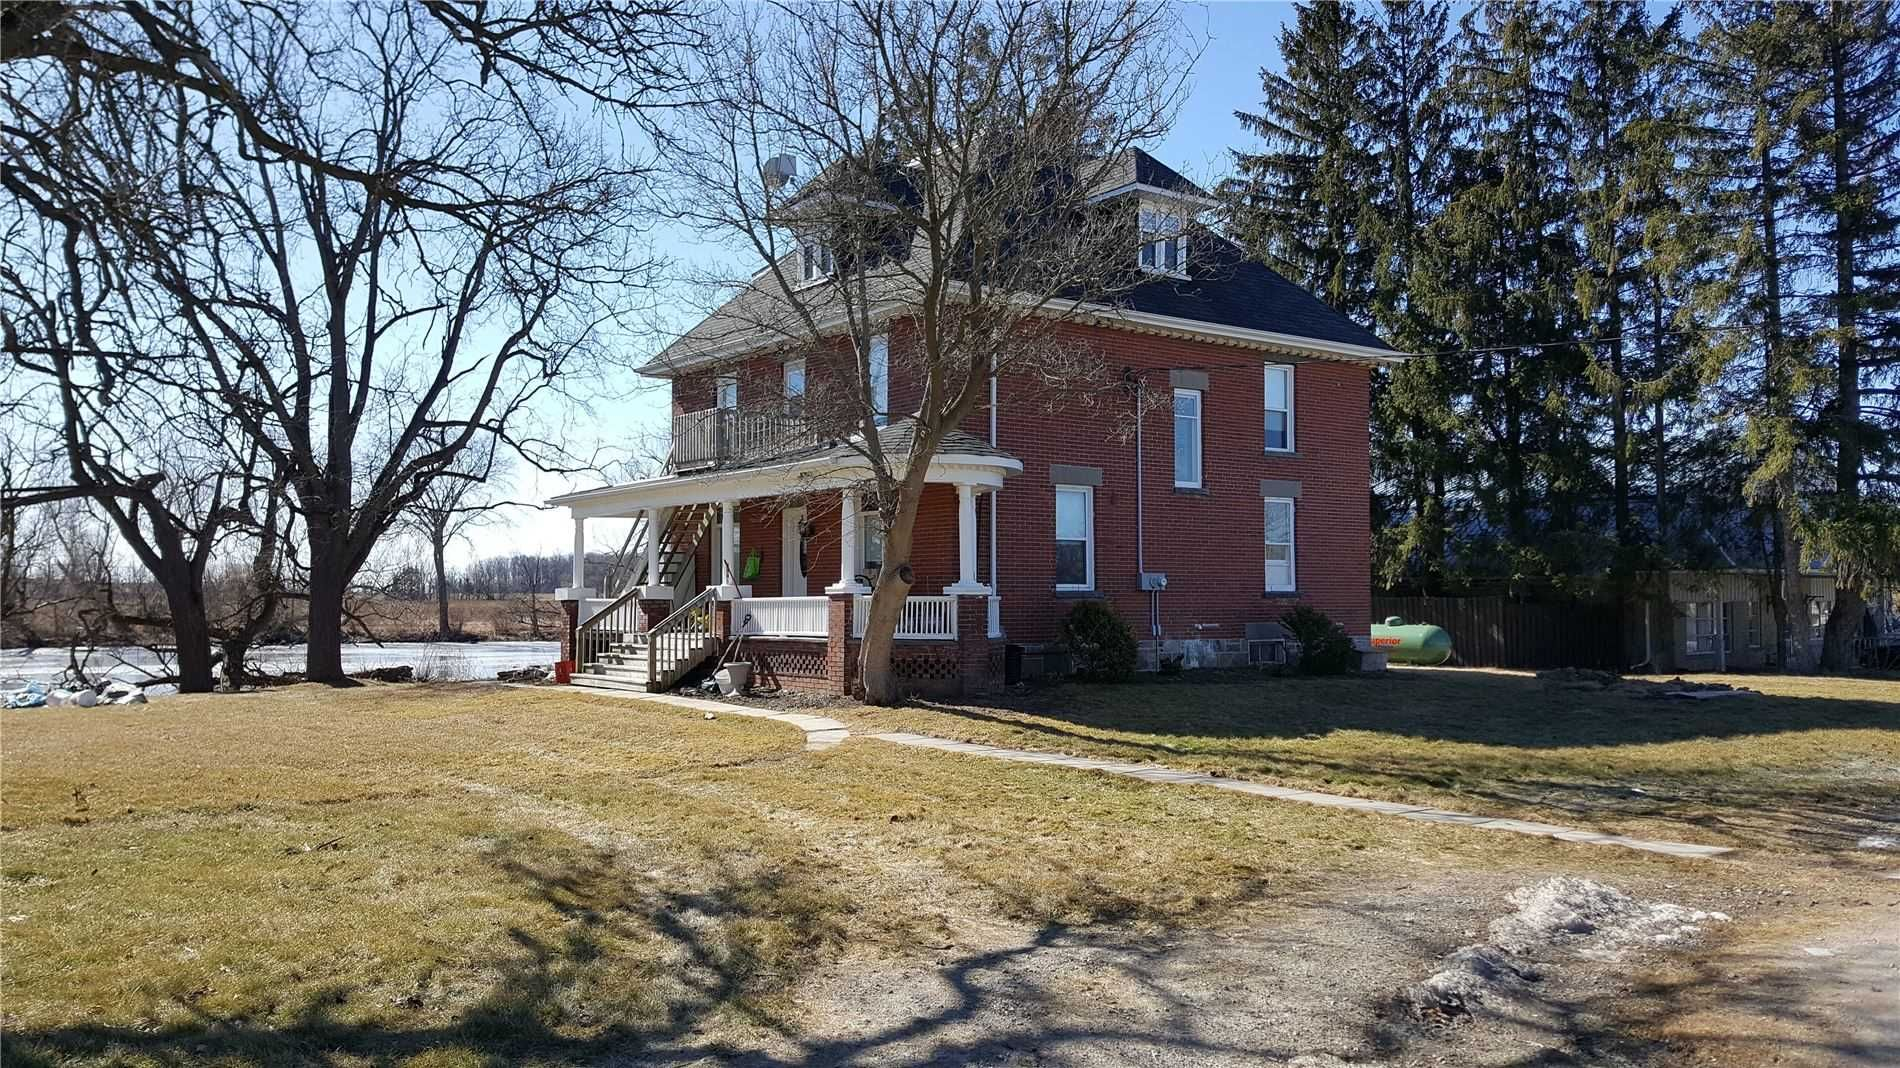 Main Photo: 3985 Stouffville Road in Whitchurch-Stouffville: Rural Whitchurch-Stouffville House (3-Storey) for sale : MLS®# N5298952